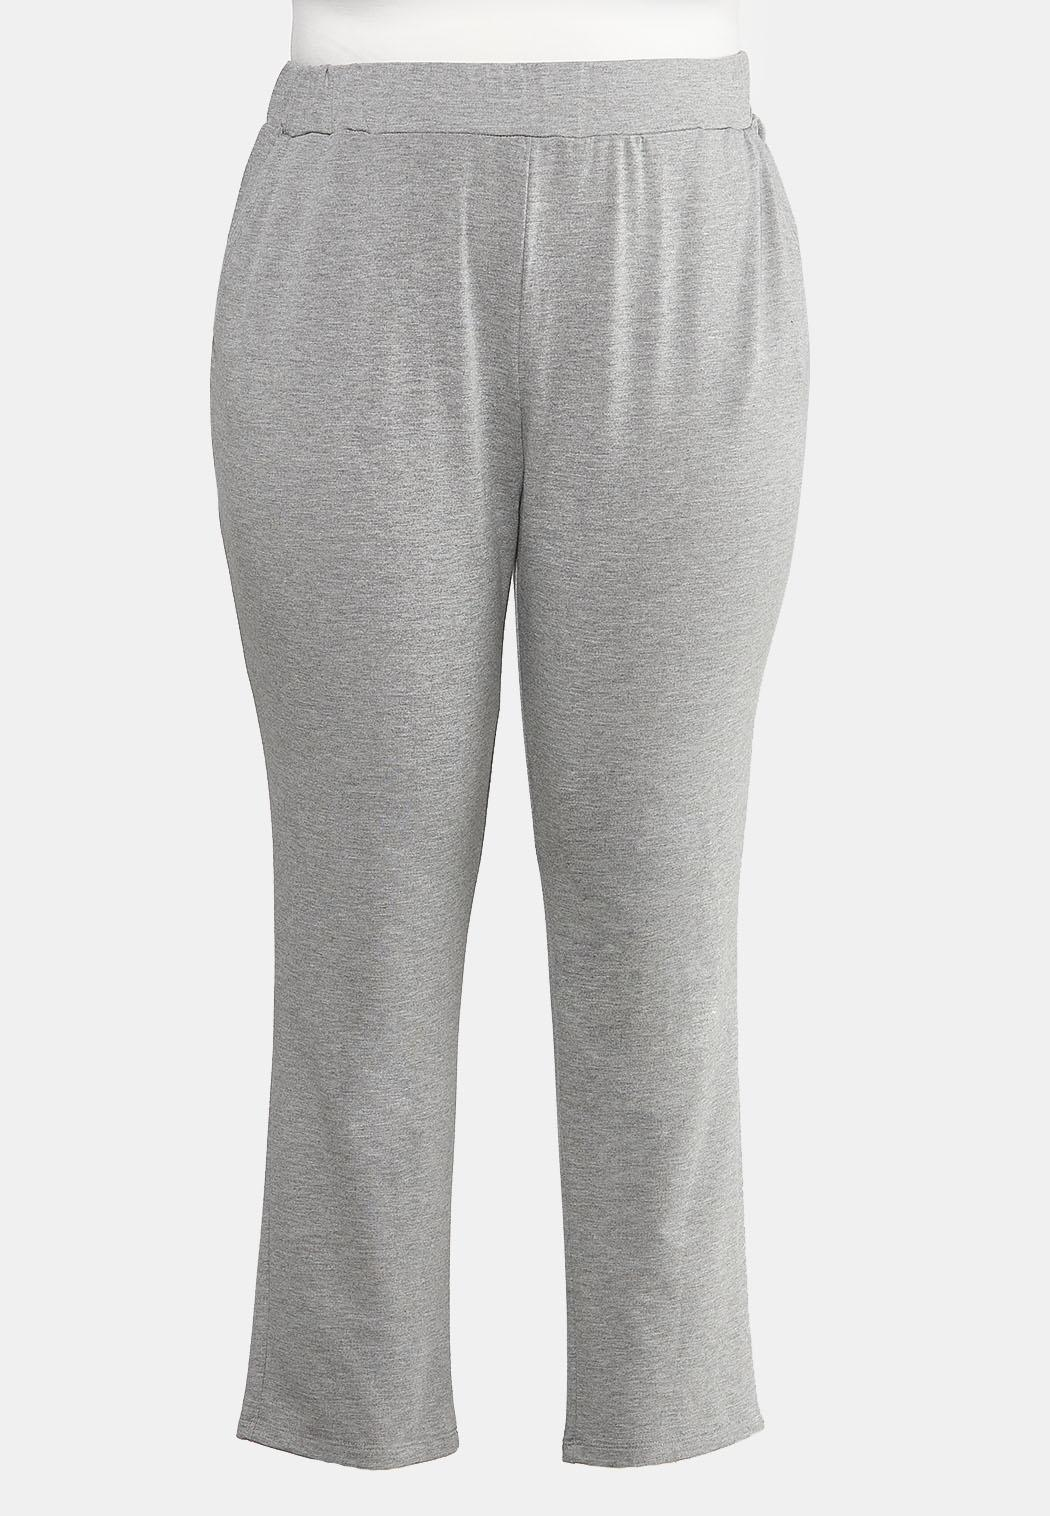 Plus Size Gray Pull- On Pants Bottoms Cato Fashions